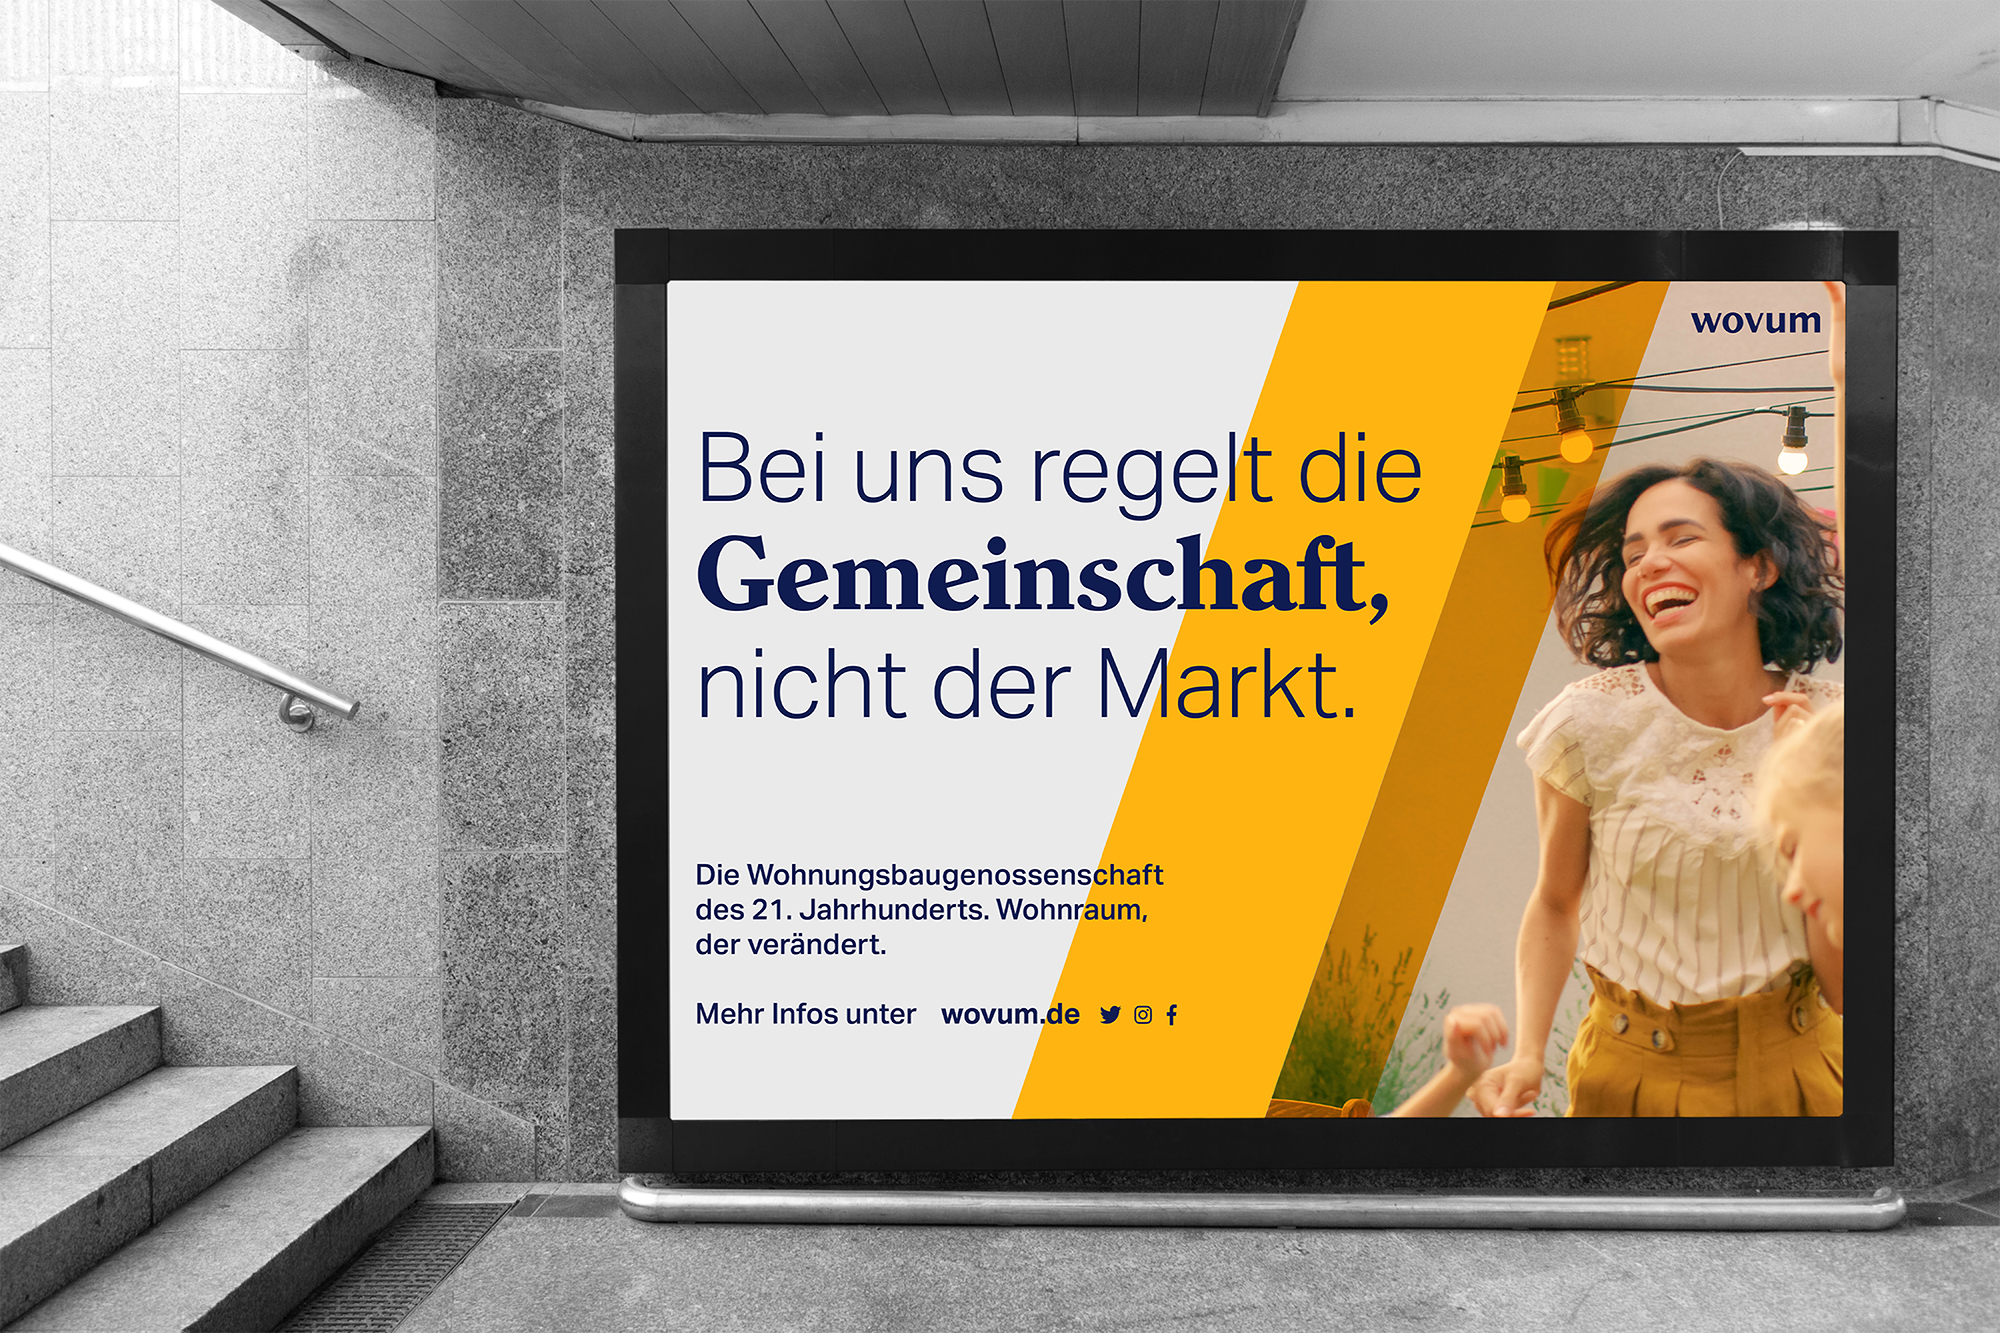 The image shows a photograph of a wovum billboard in a subway station entrance.